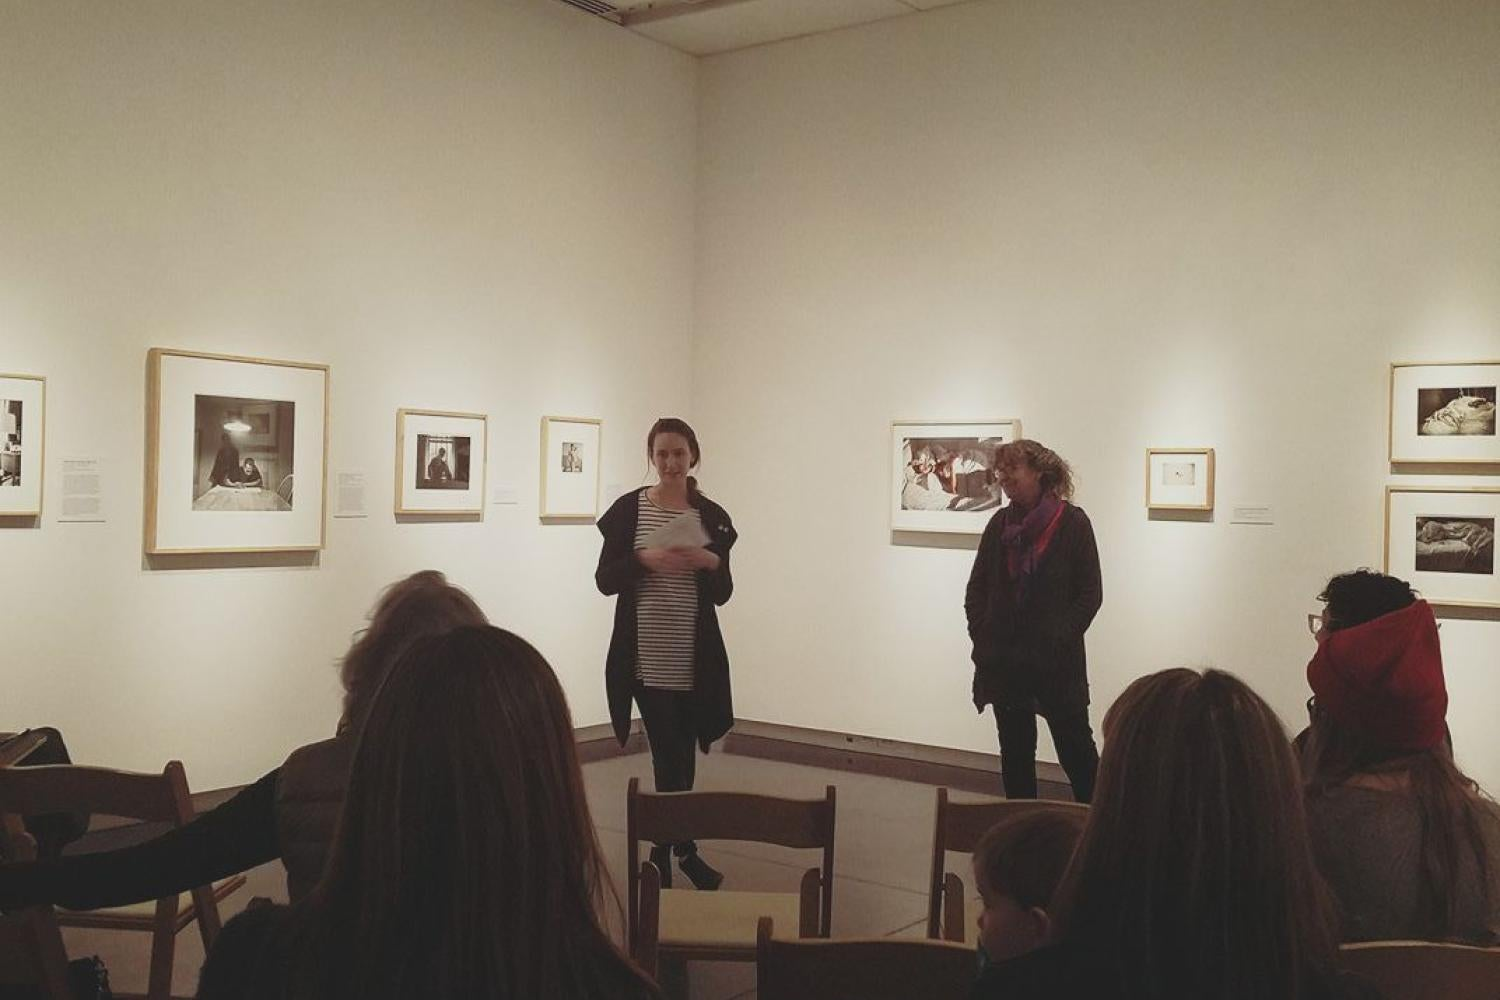 Women speaking in an exhibition of photographs